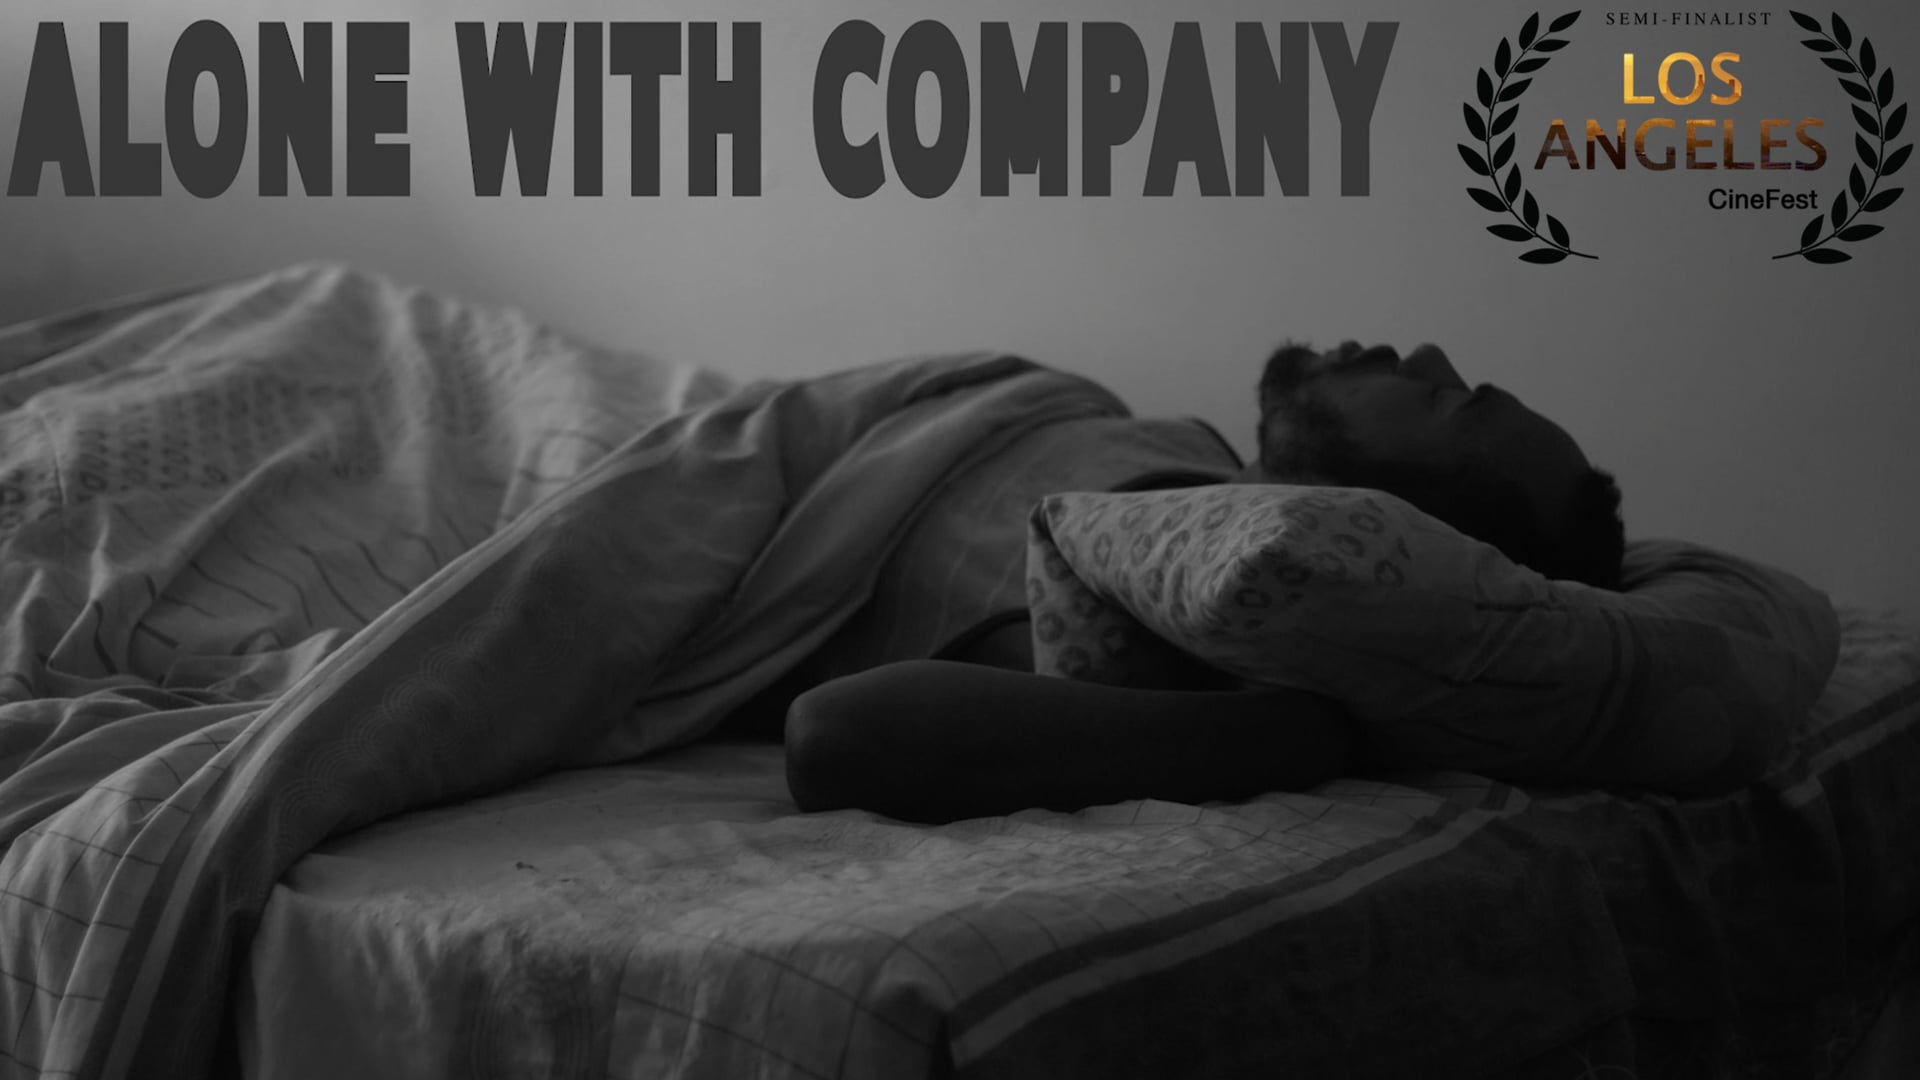 Alone With Company